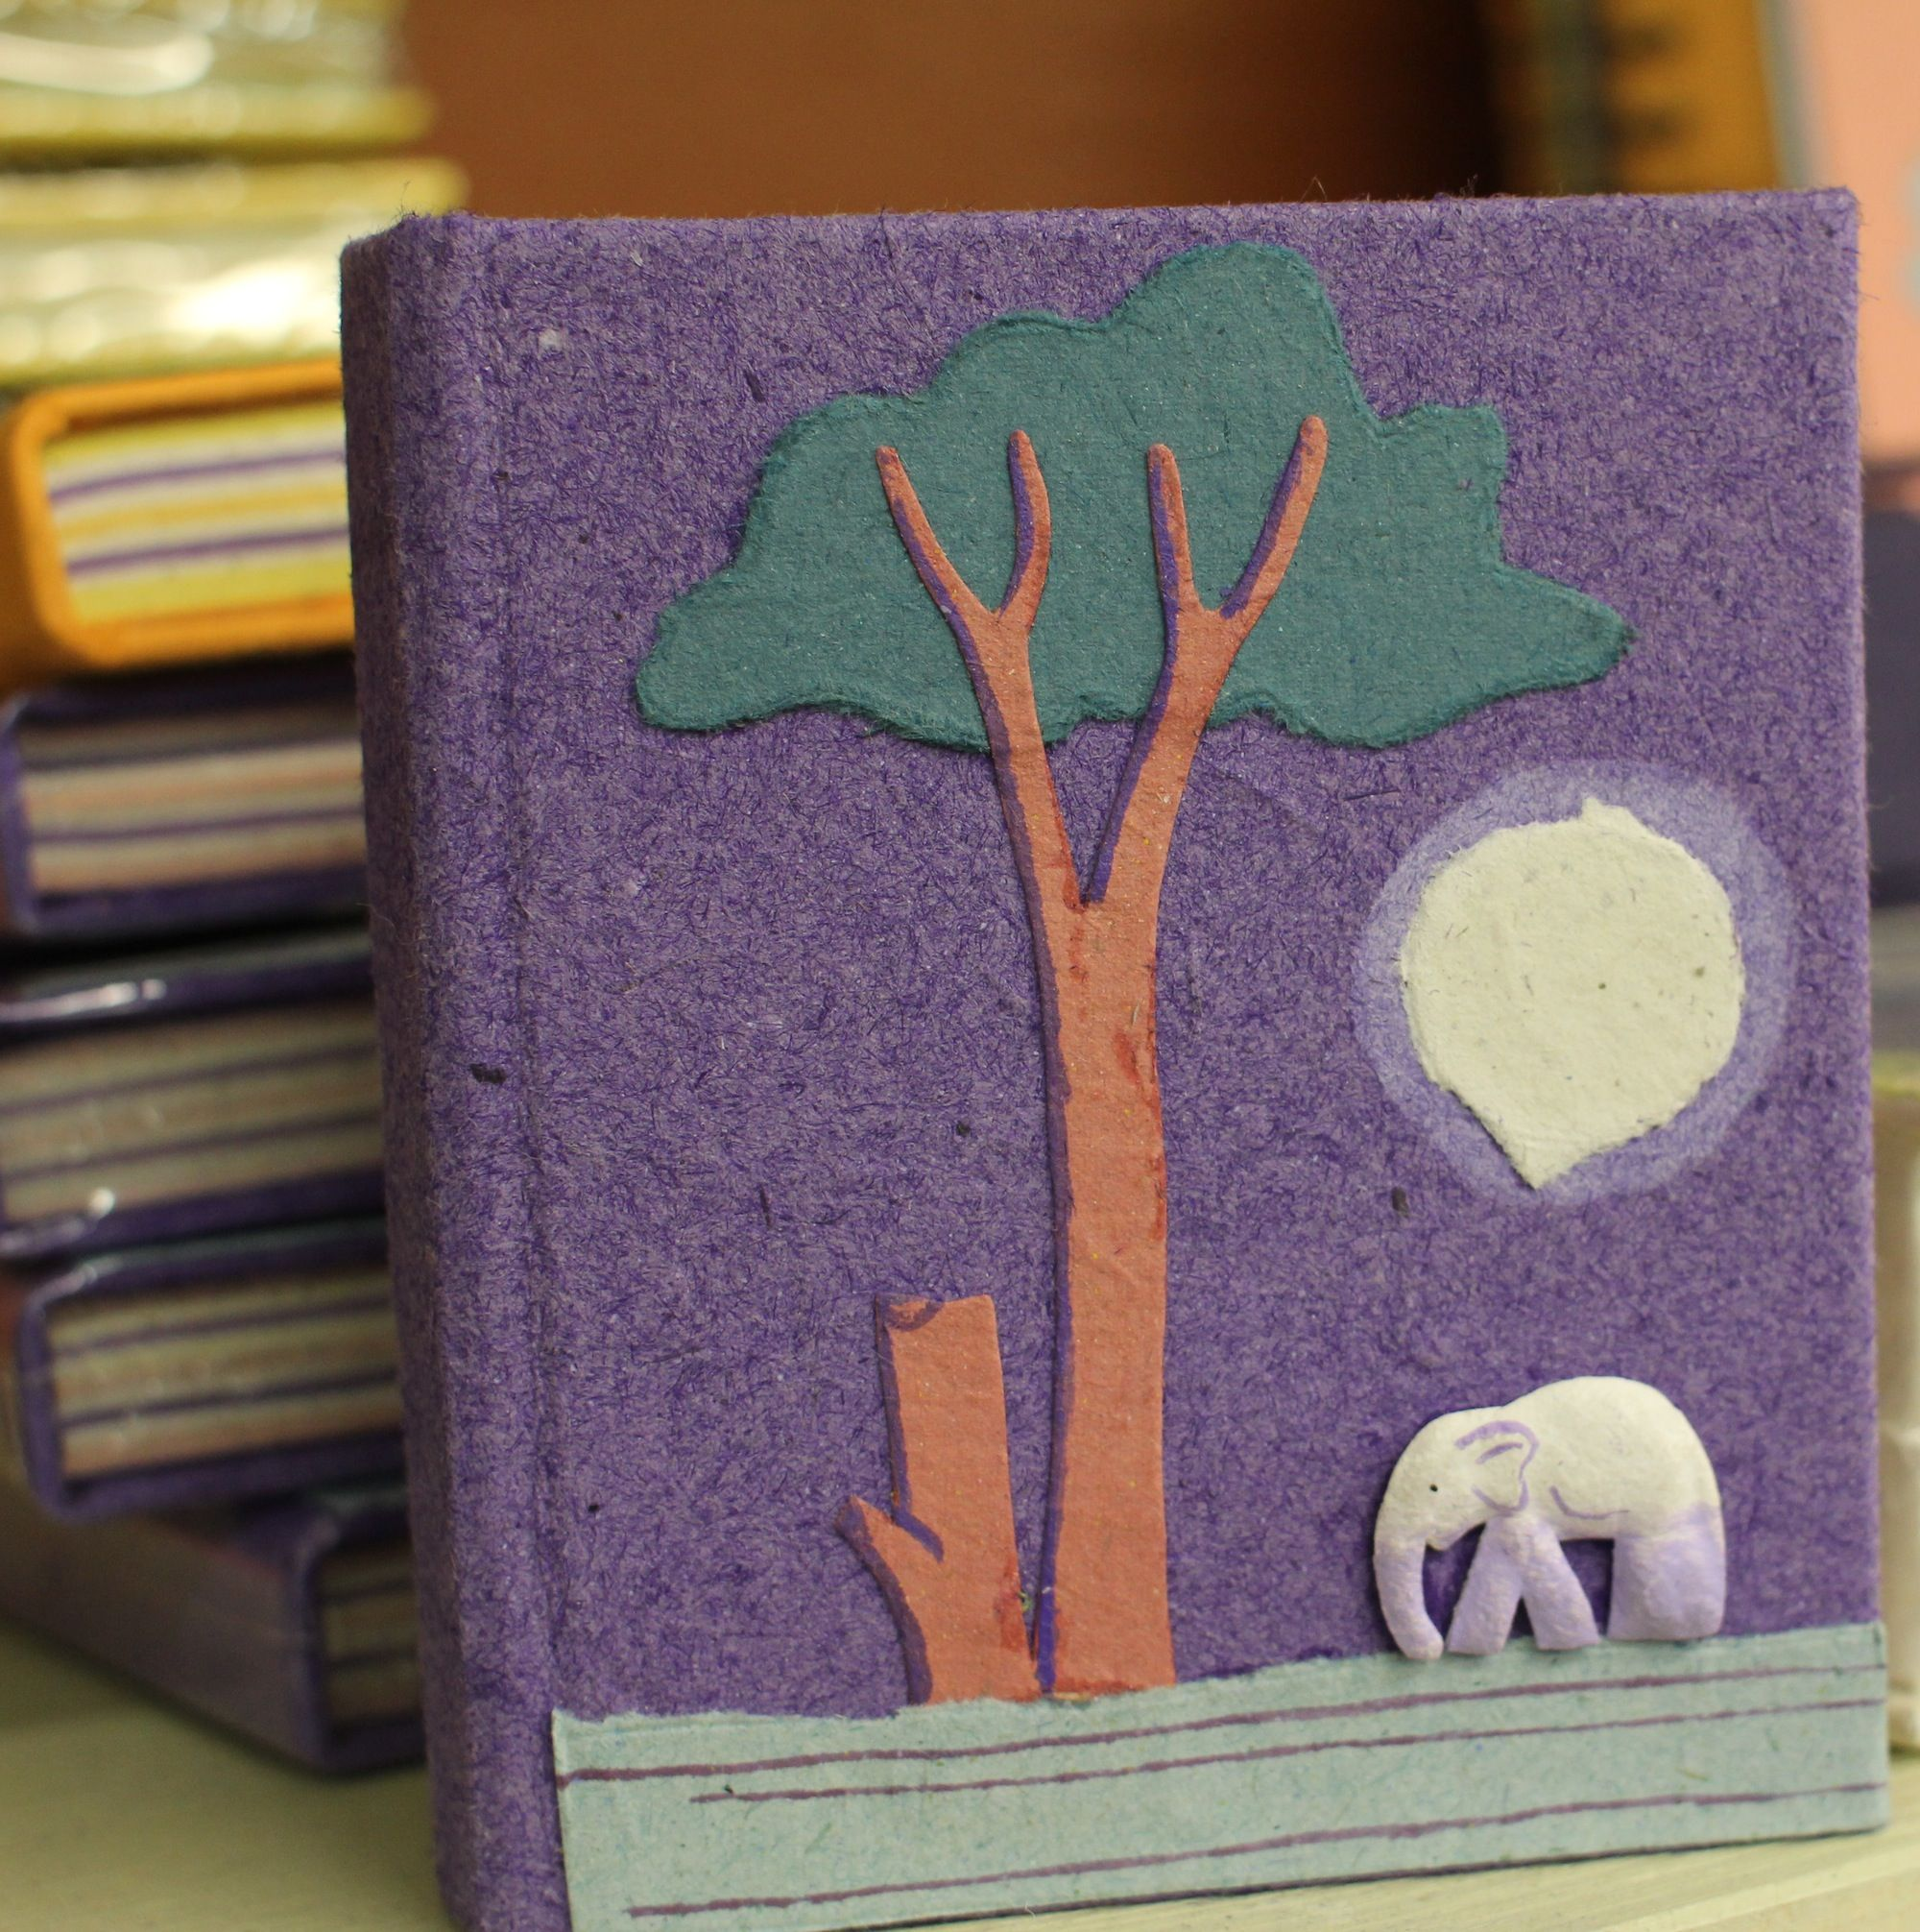 This little fair trade, handmade notebook is made of a mixture of elephant dung and post consumer paper in Sri Lanka by the 'Mr. Ellie Pooh's Elephant Dung Paper' group.